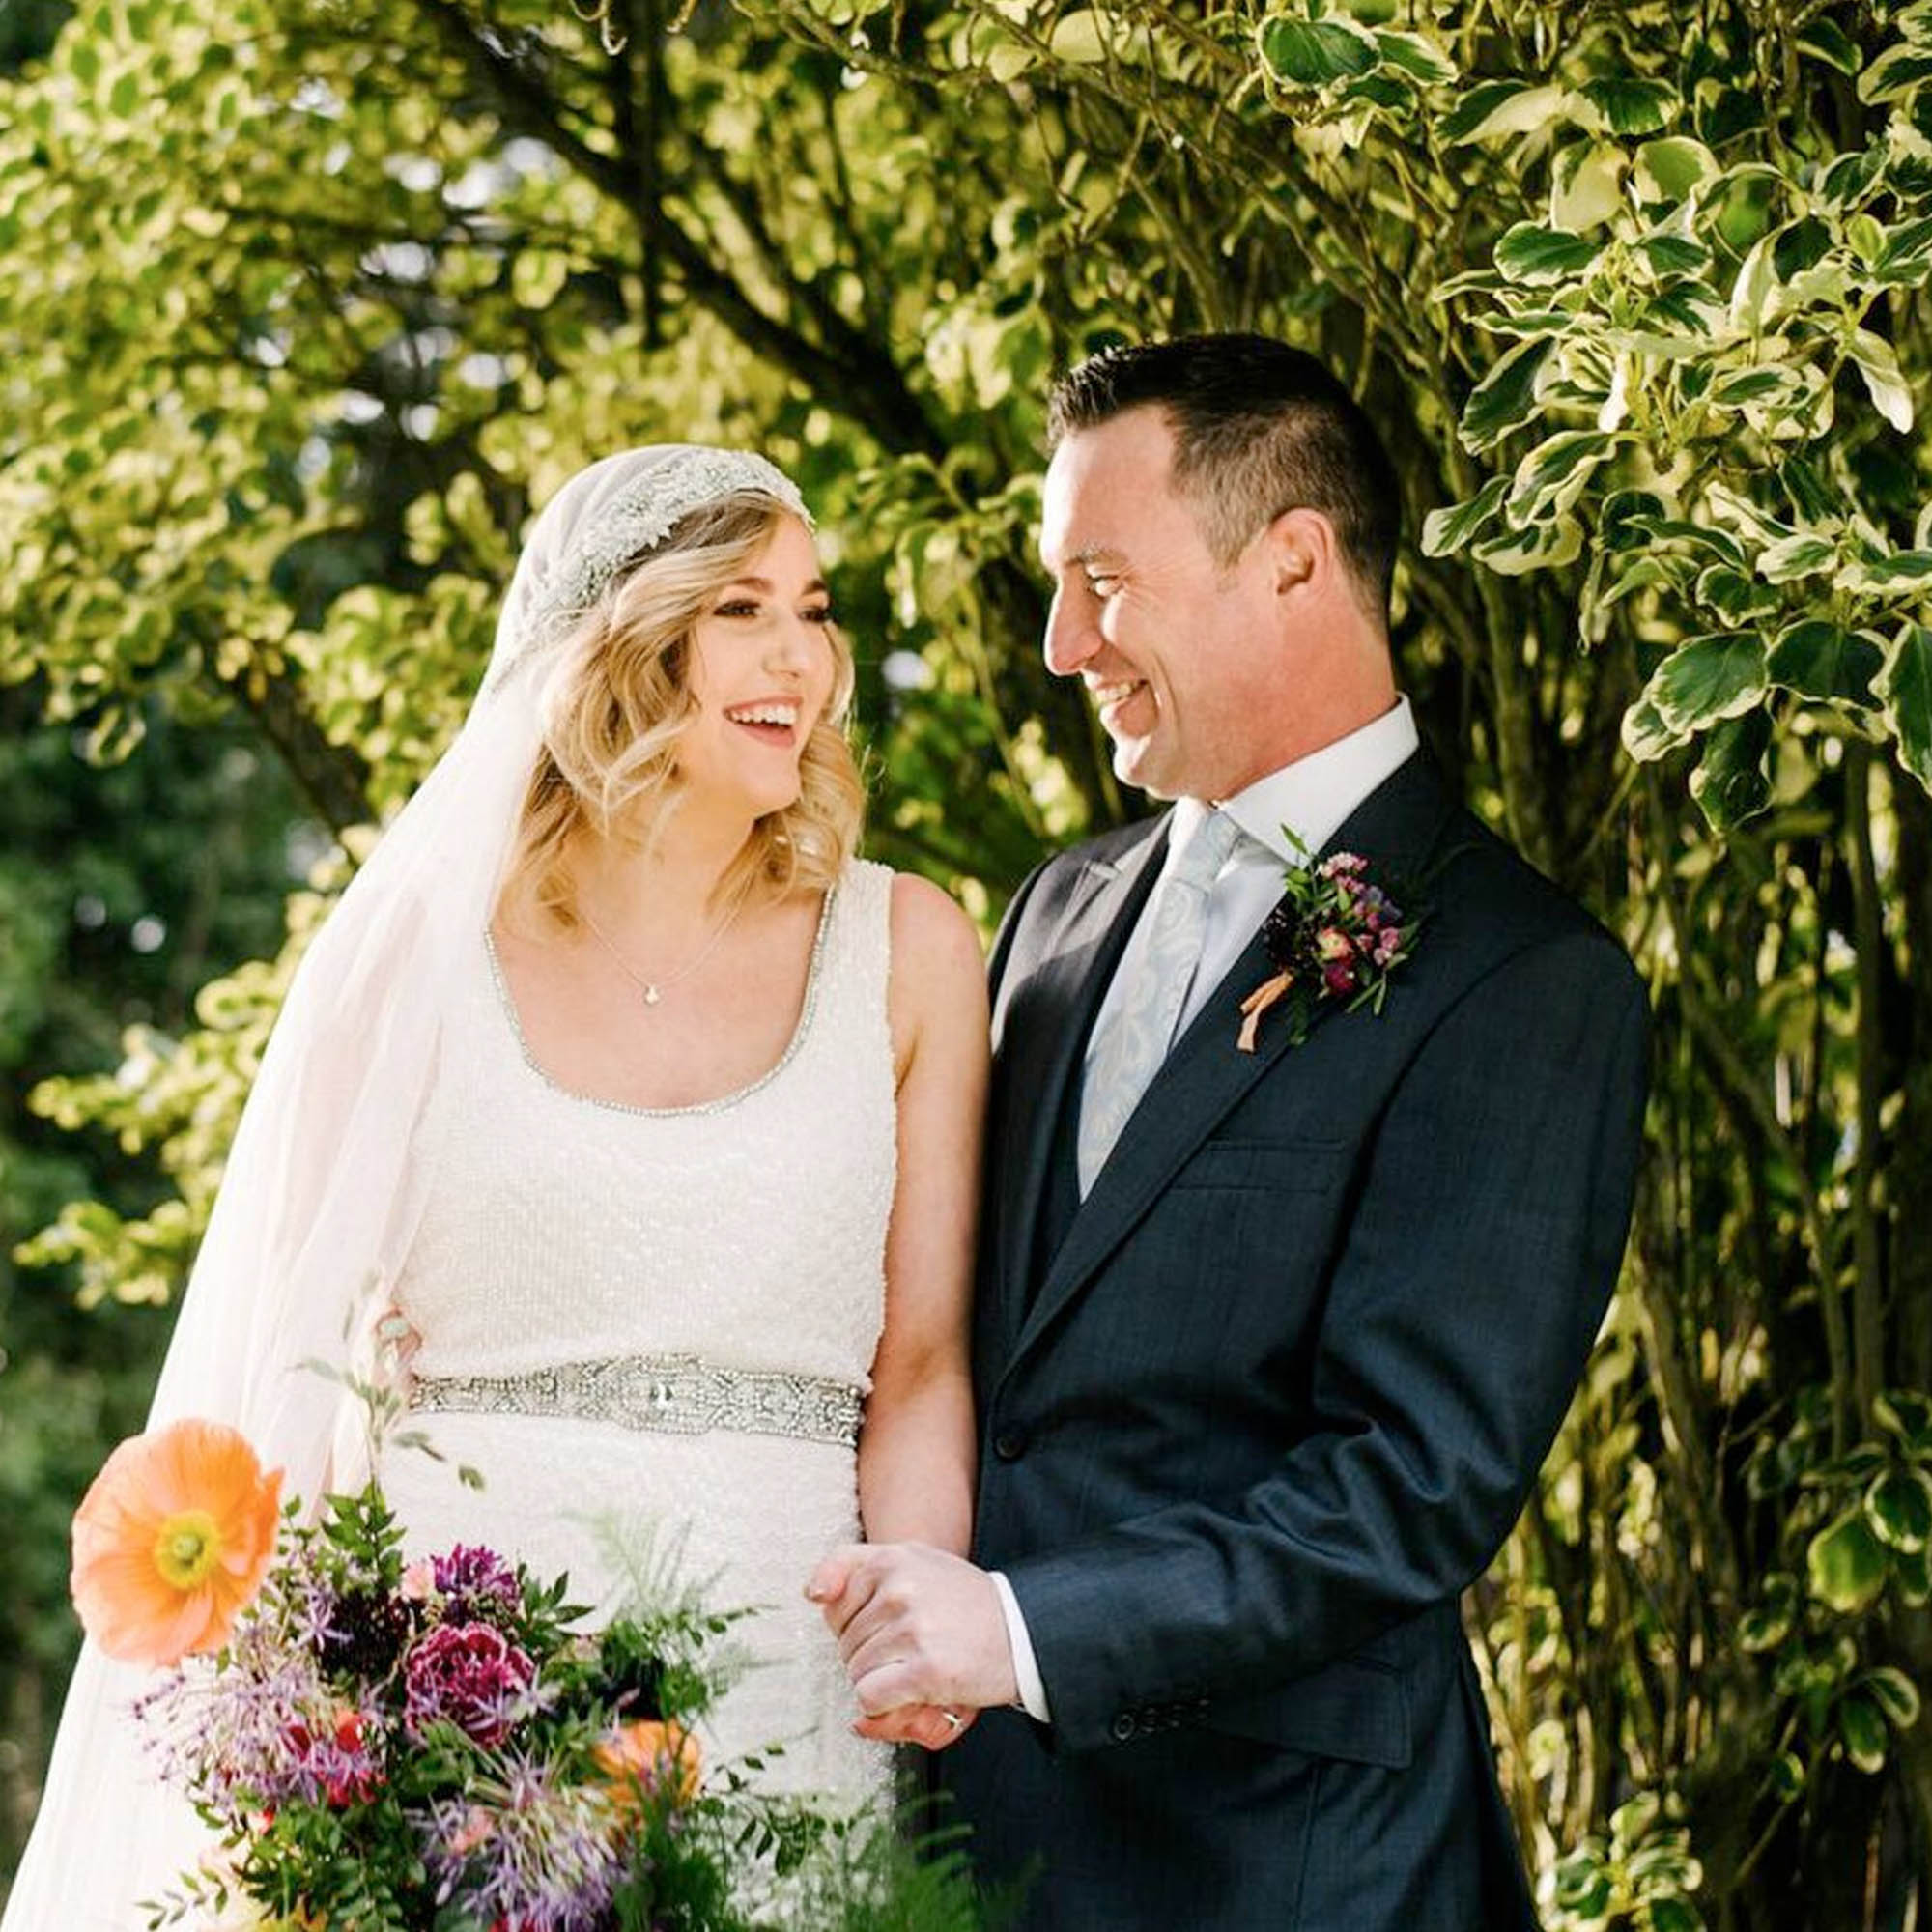 Hillmount House Weekday Wedding Package